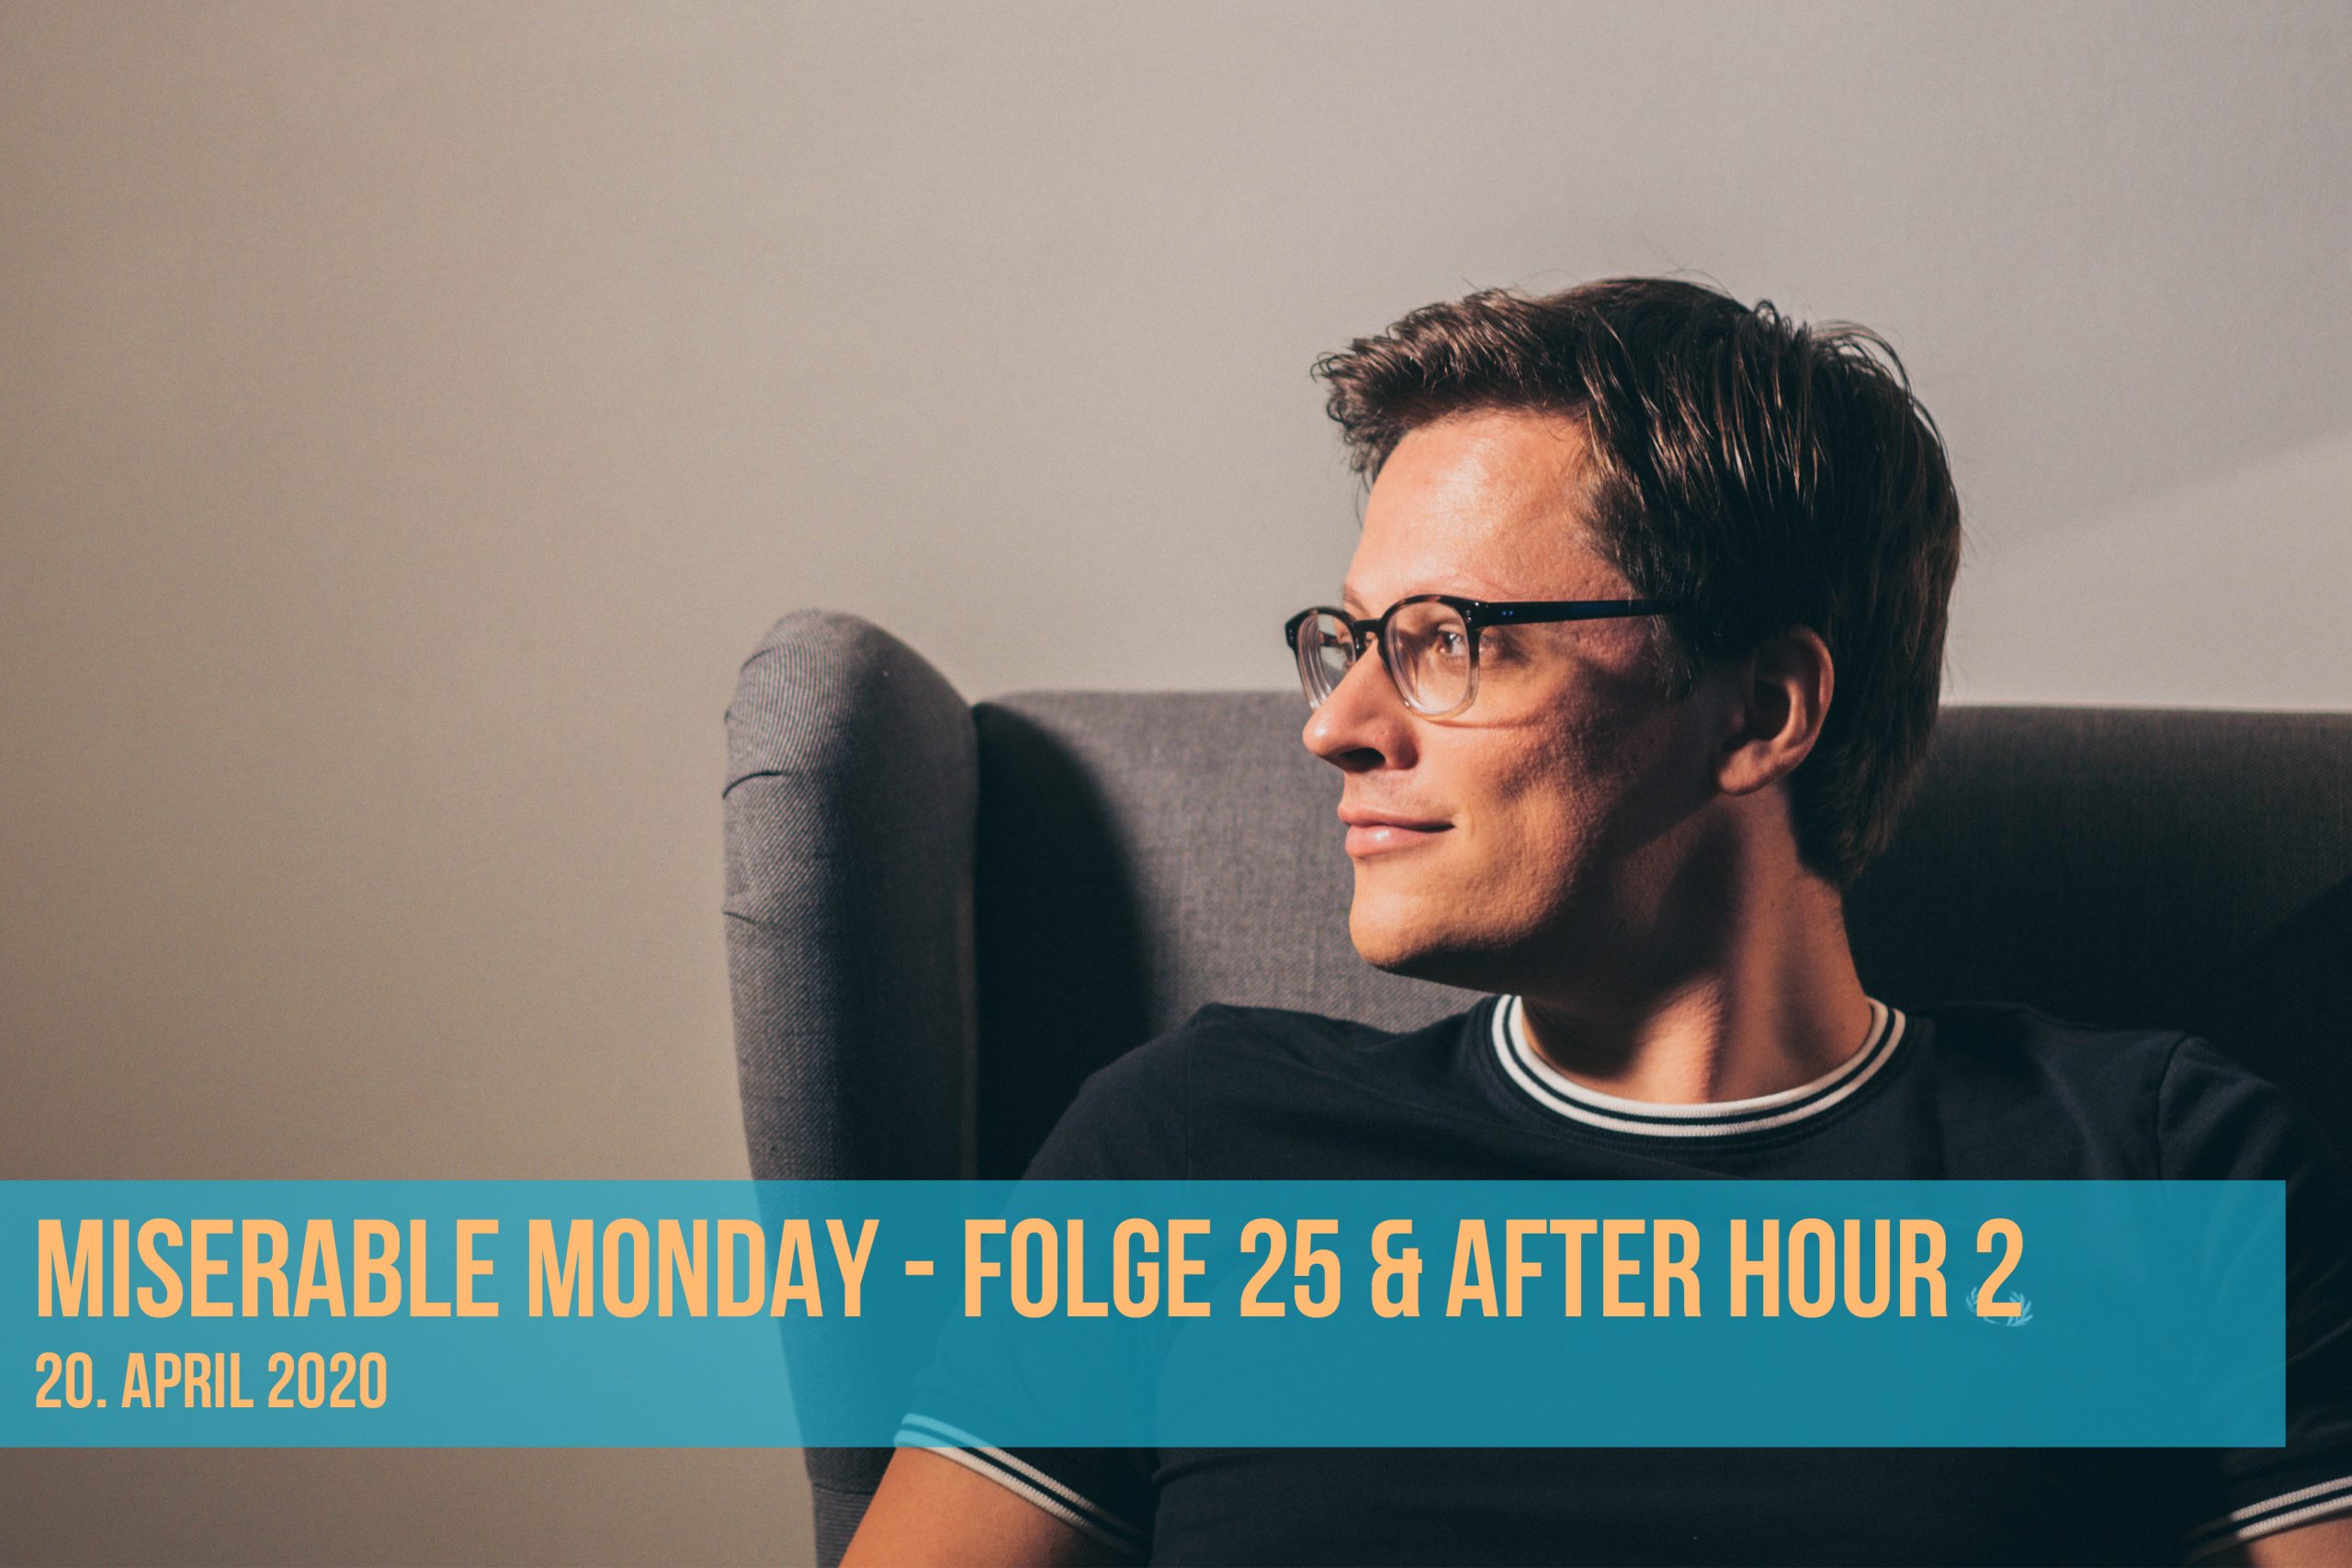 Miserable Monday - Folge 25 & After Hour 2 - 20/04/20